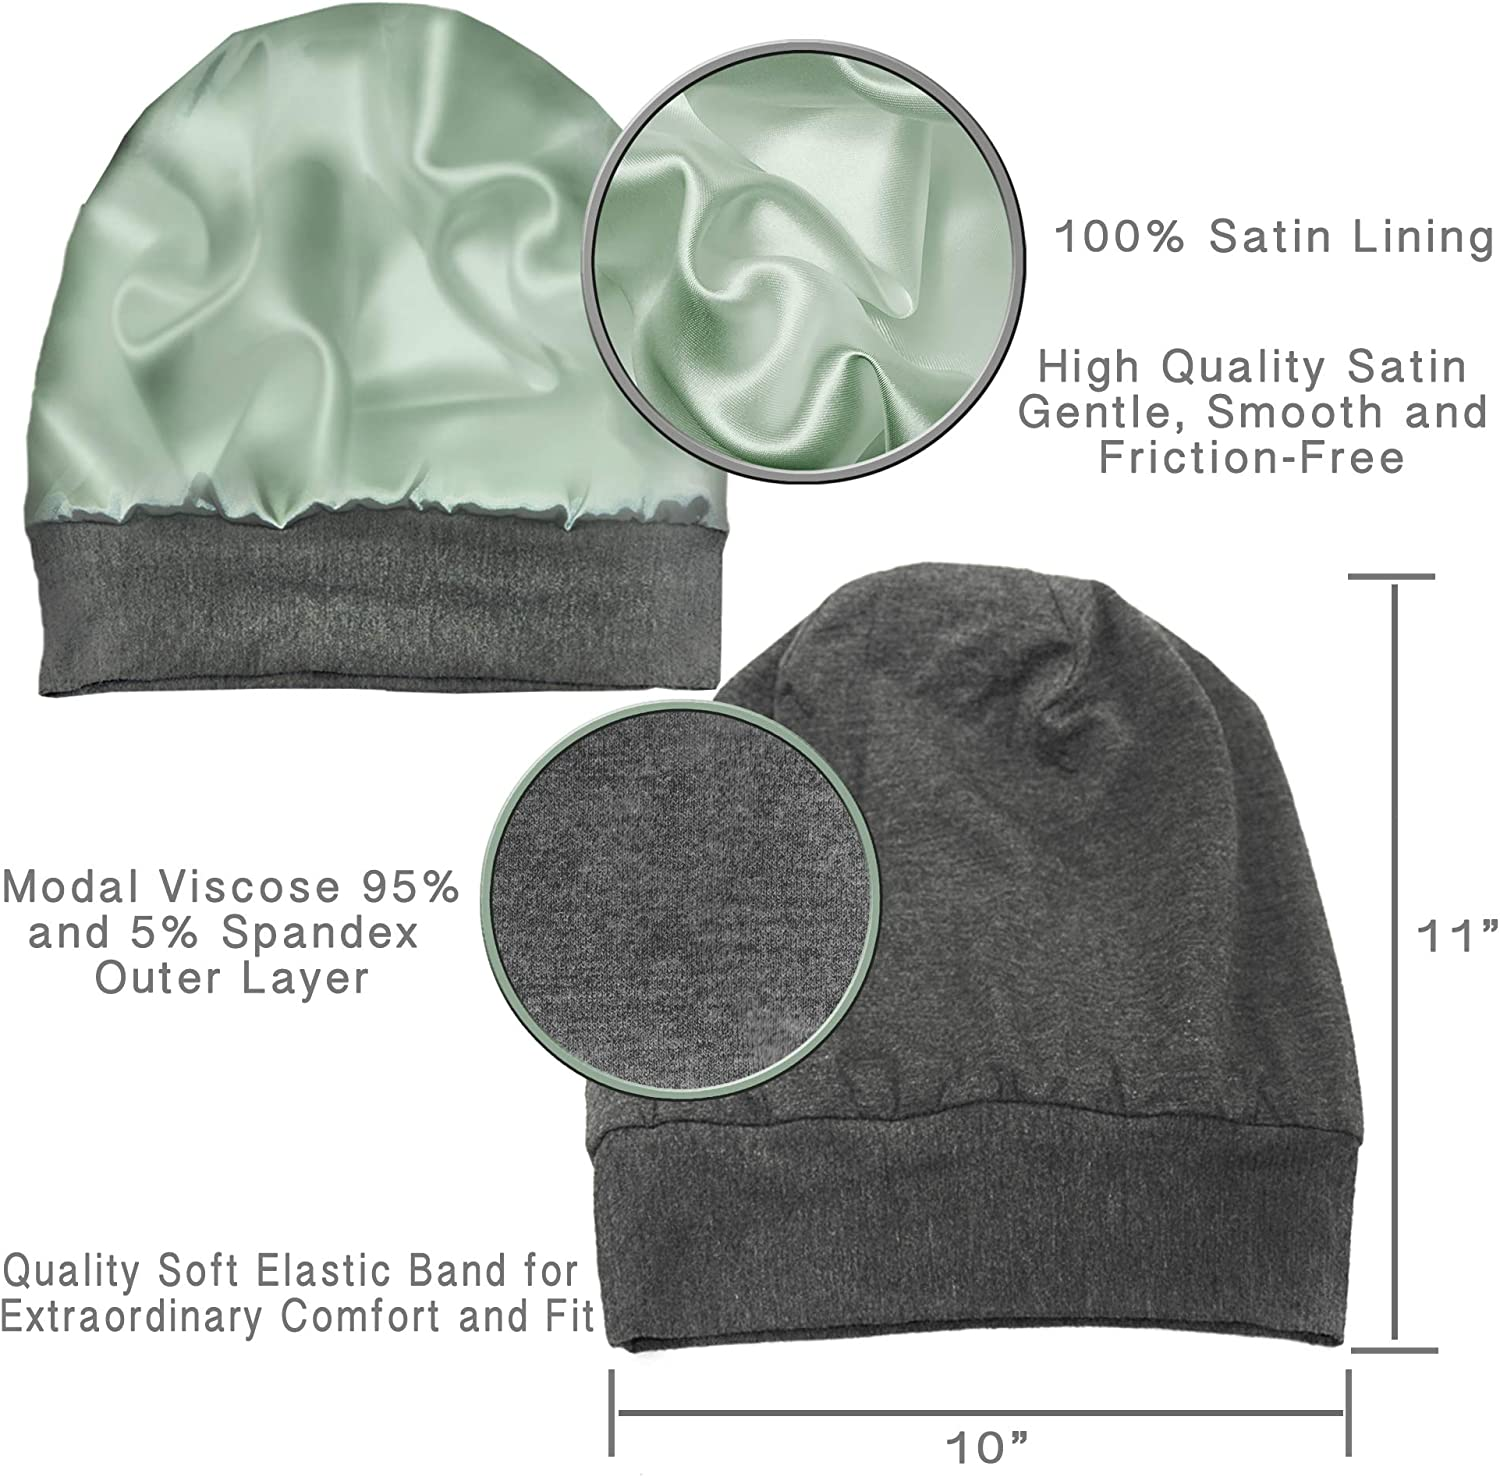 ALEXANDER PRODUCTS Satin Lined Sleep Cap Slouchy Beanie Slap Hat for Natural Curly Girls and Frizzy Hair Cap for Women